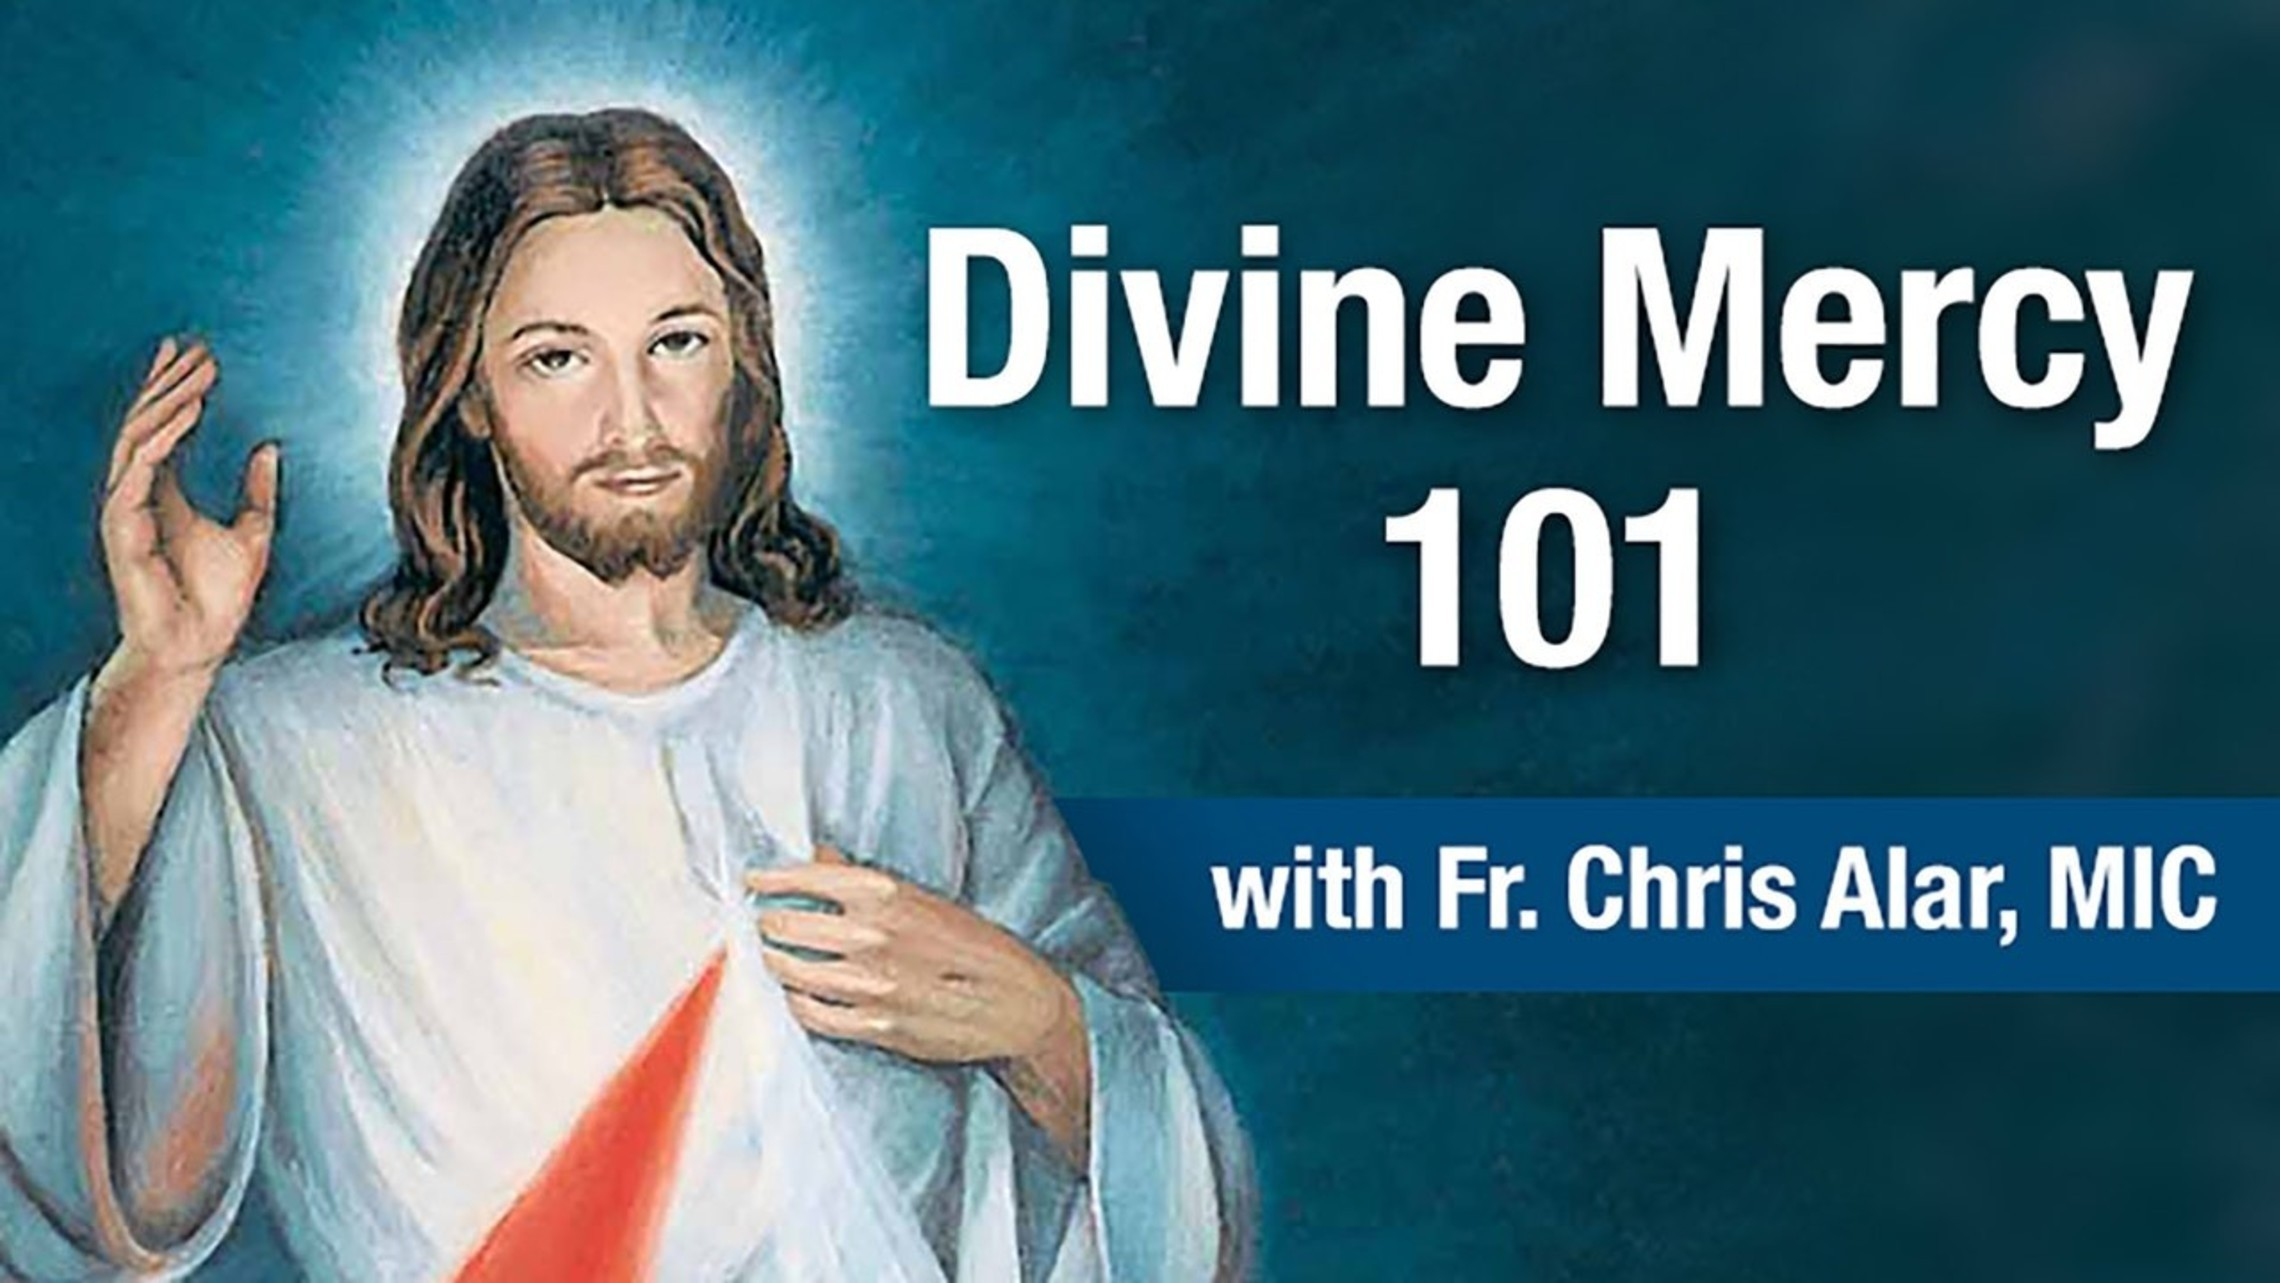 Formed Divine Mercy 101